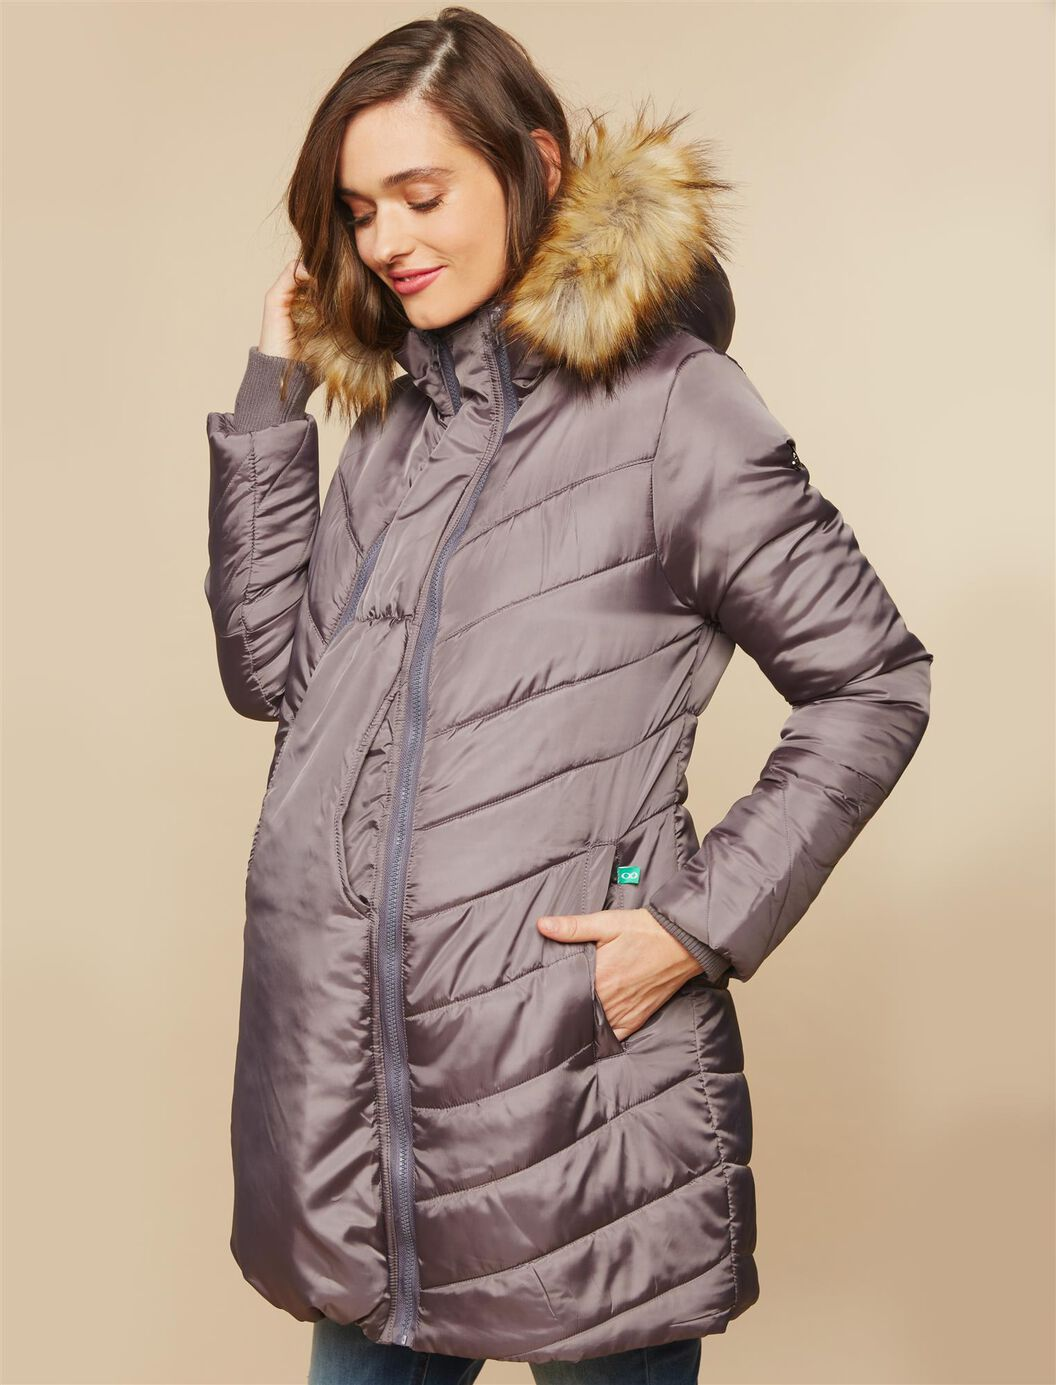 Modern Eternity 3 in 1 Maternity Coat at Motherhood Maternity in Victor, NY | Tuggl